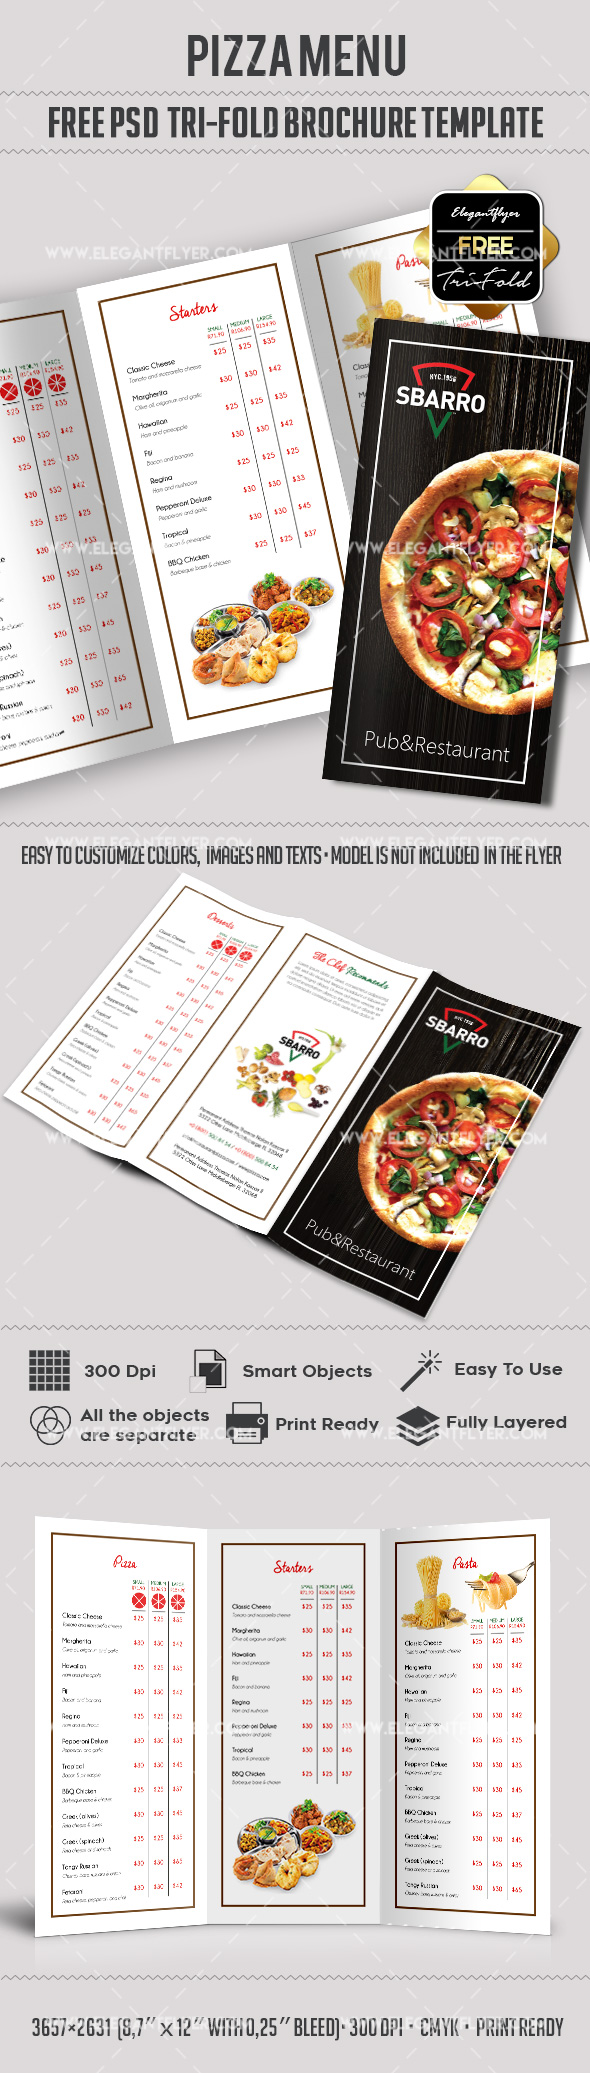 Pizza Free TriFold PSD Brochure Template Food Menu By - Menu brochure template free